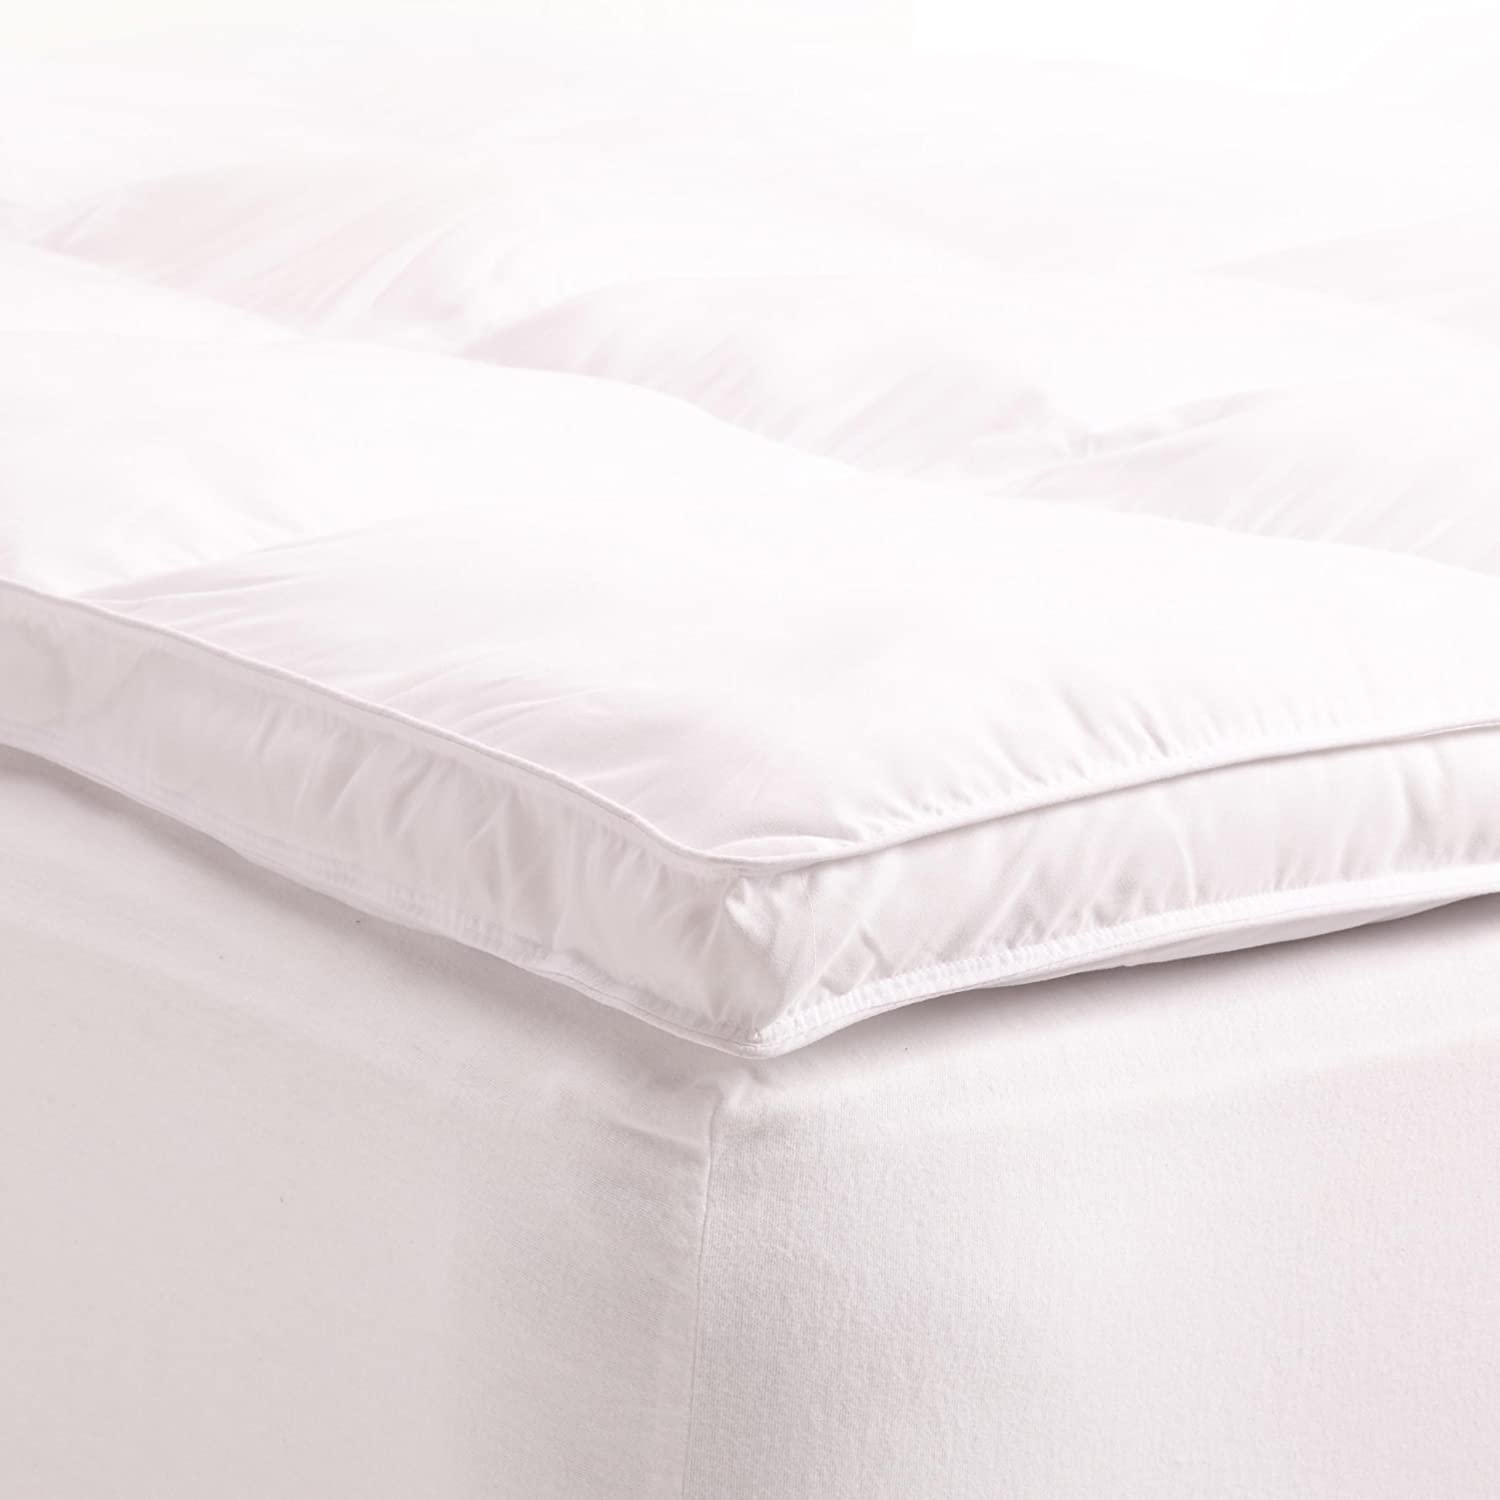 top plush reviews sealy premium mattress topper pdx wayfair mattresses pillow response